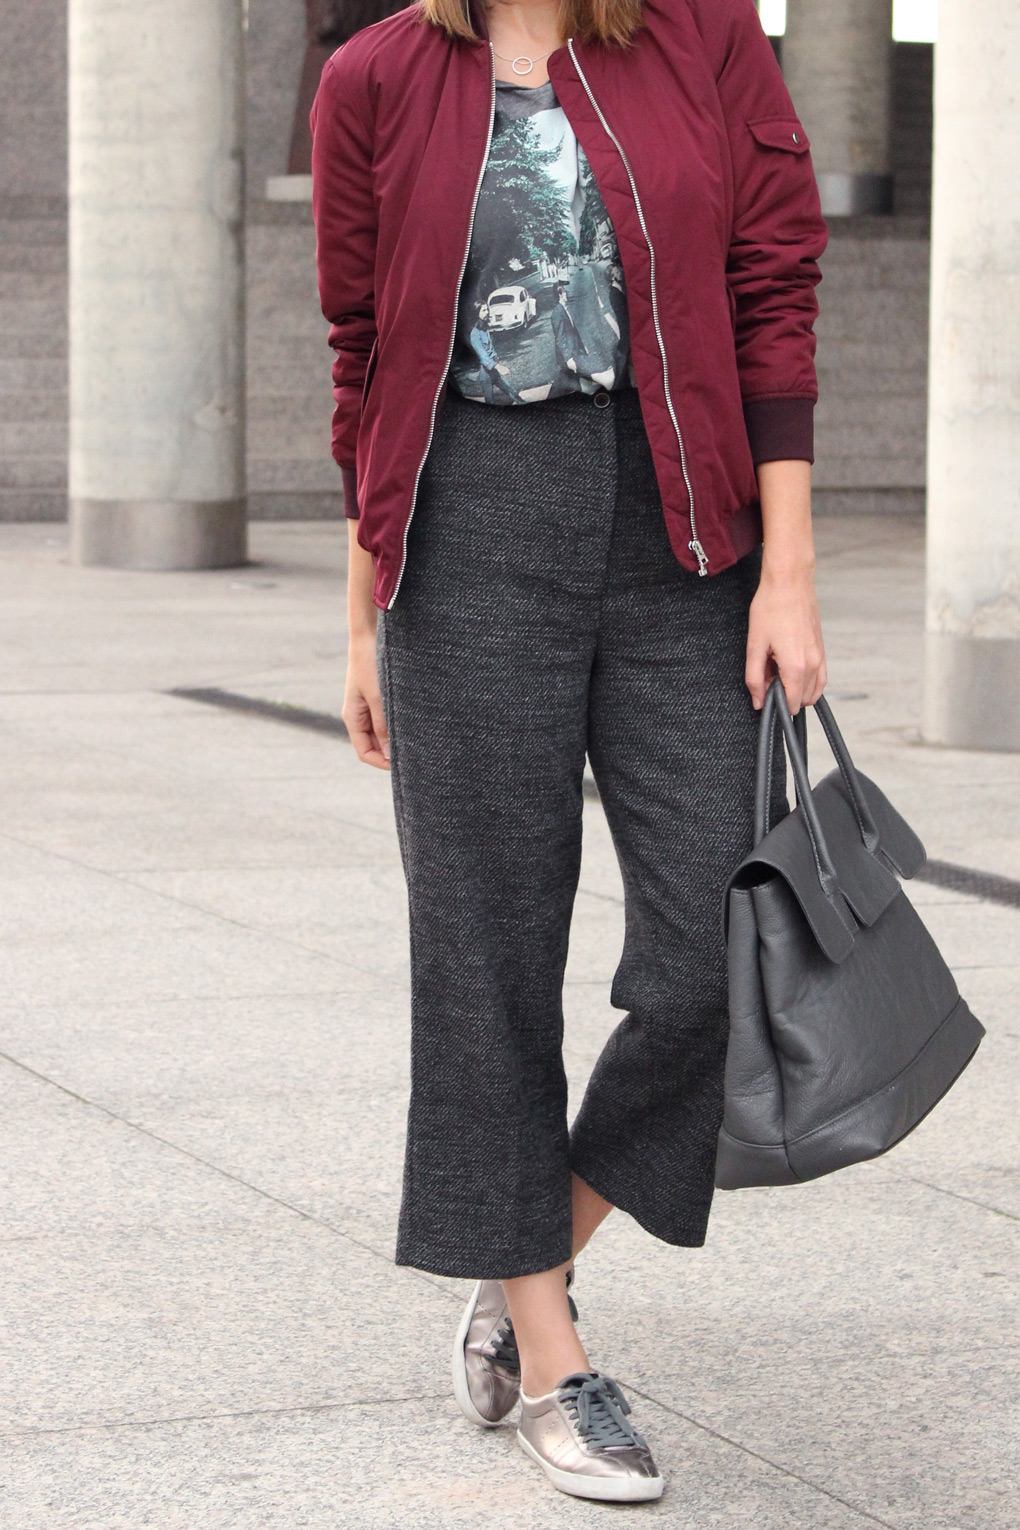 pantalon-cropped-gris-antracita-talle-alto-recto-zara-deportivas-planteadas-shopping-bag-bomber-granate-blog-moda-galicia